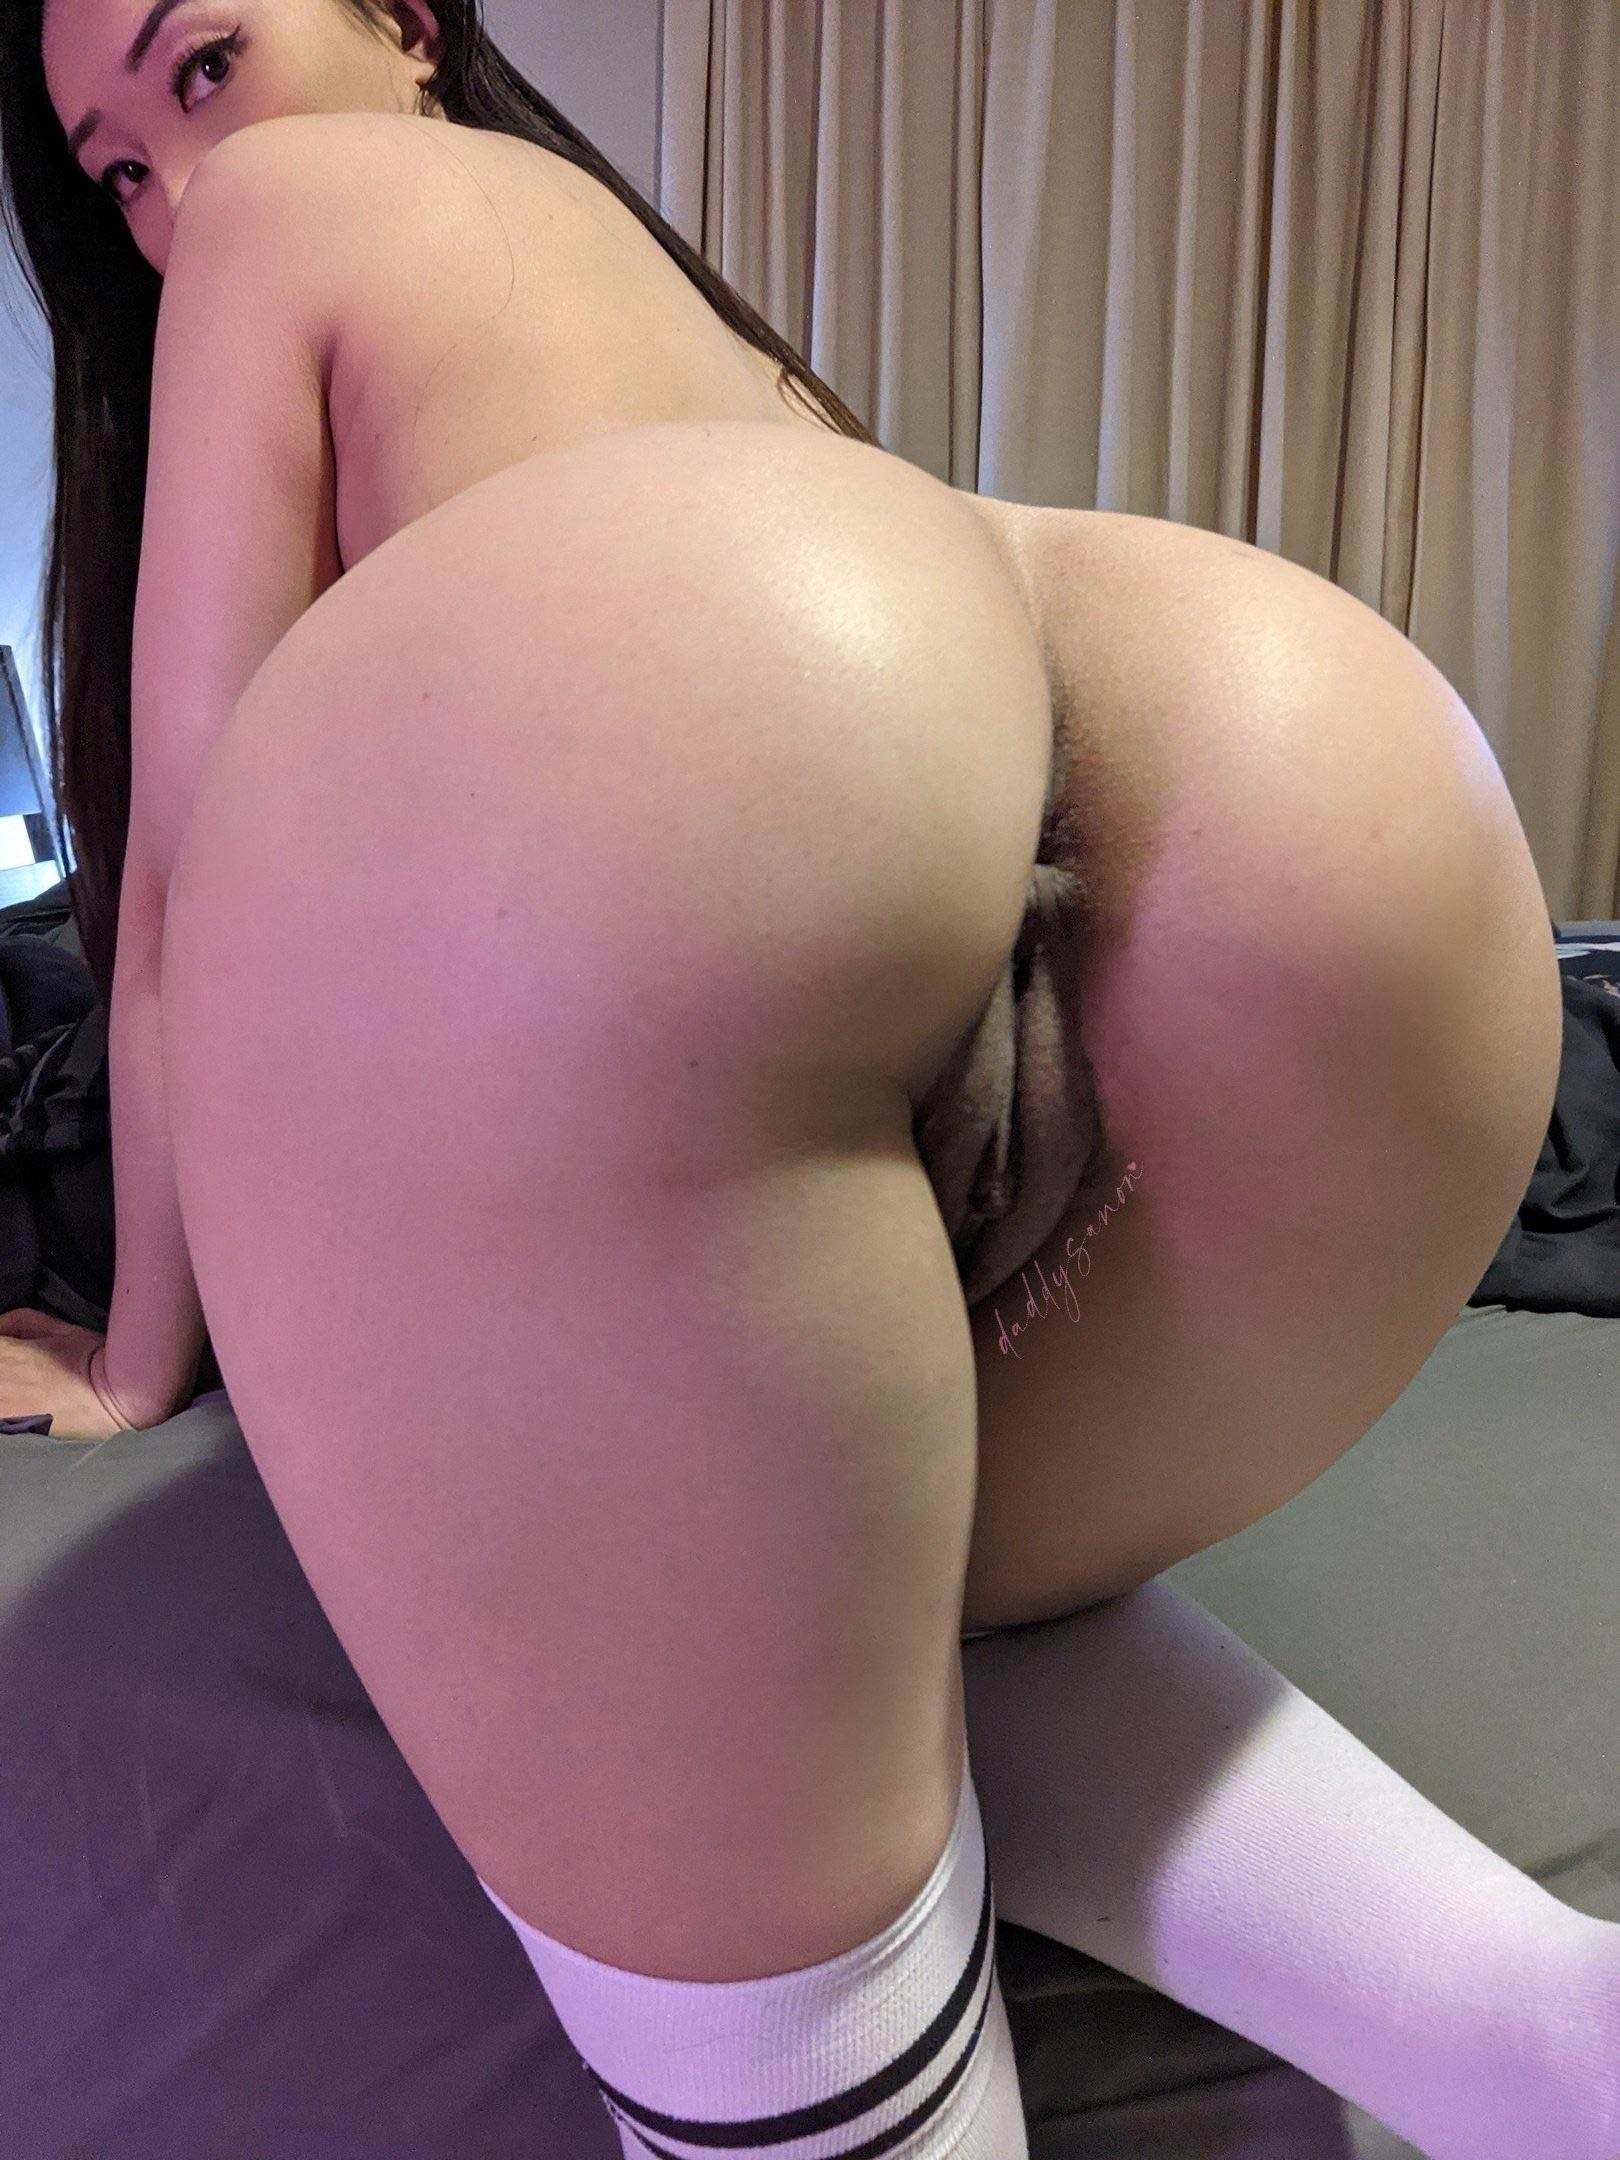 Bent over, thigh highs, ass shinning. Can you even hold back?